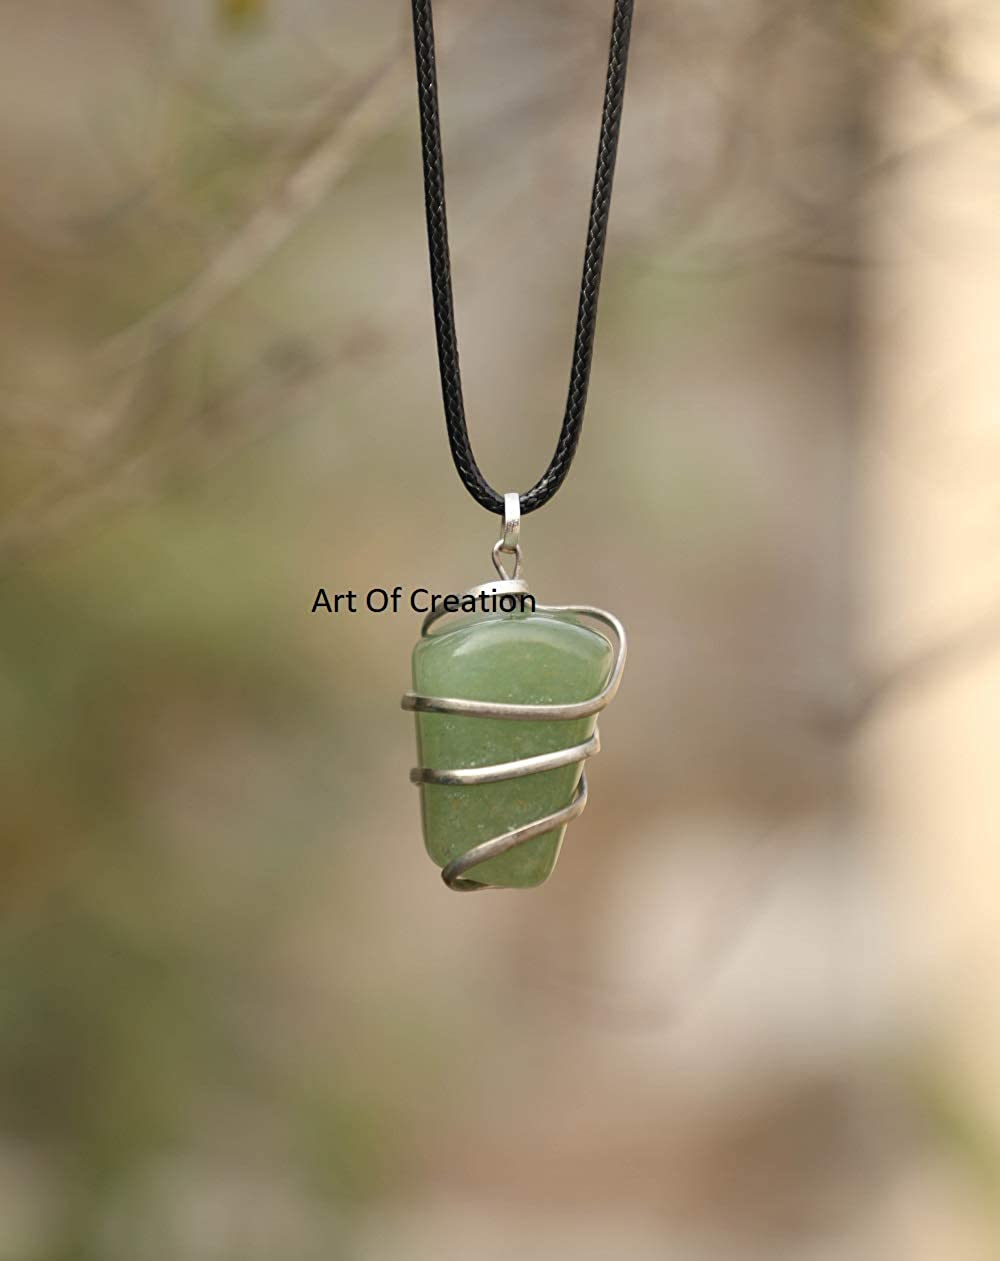 Wire Wrapped Pendant OOAK Earth Friendly Natural Healing Eco Fashion Gift Small Confidence Amulet